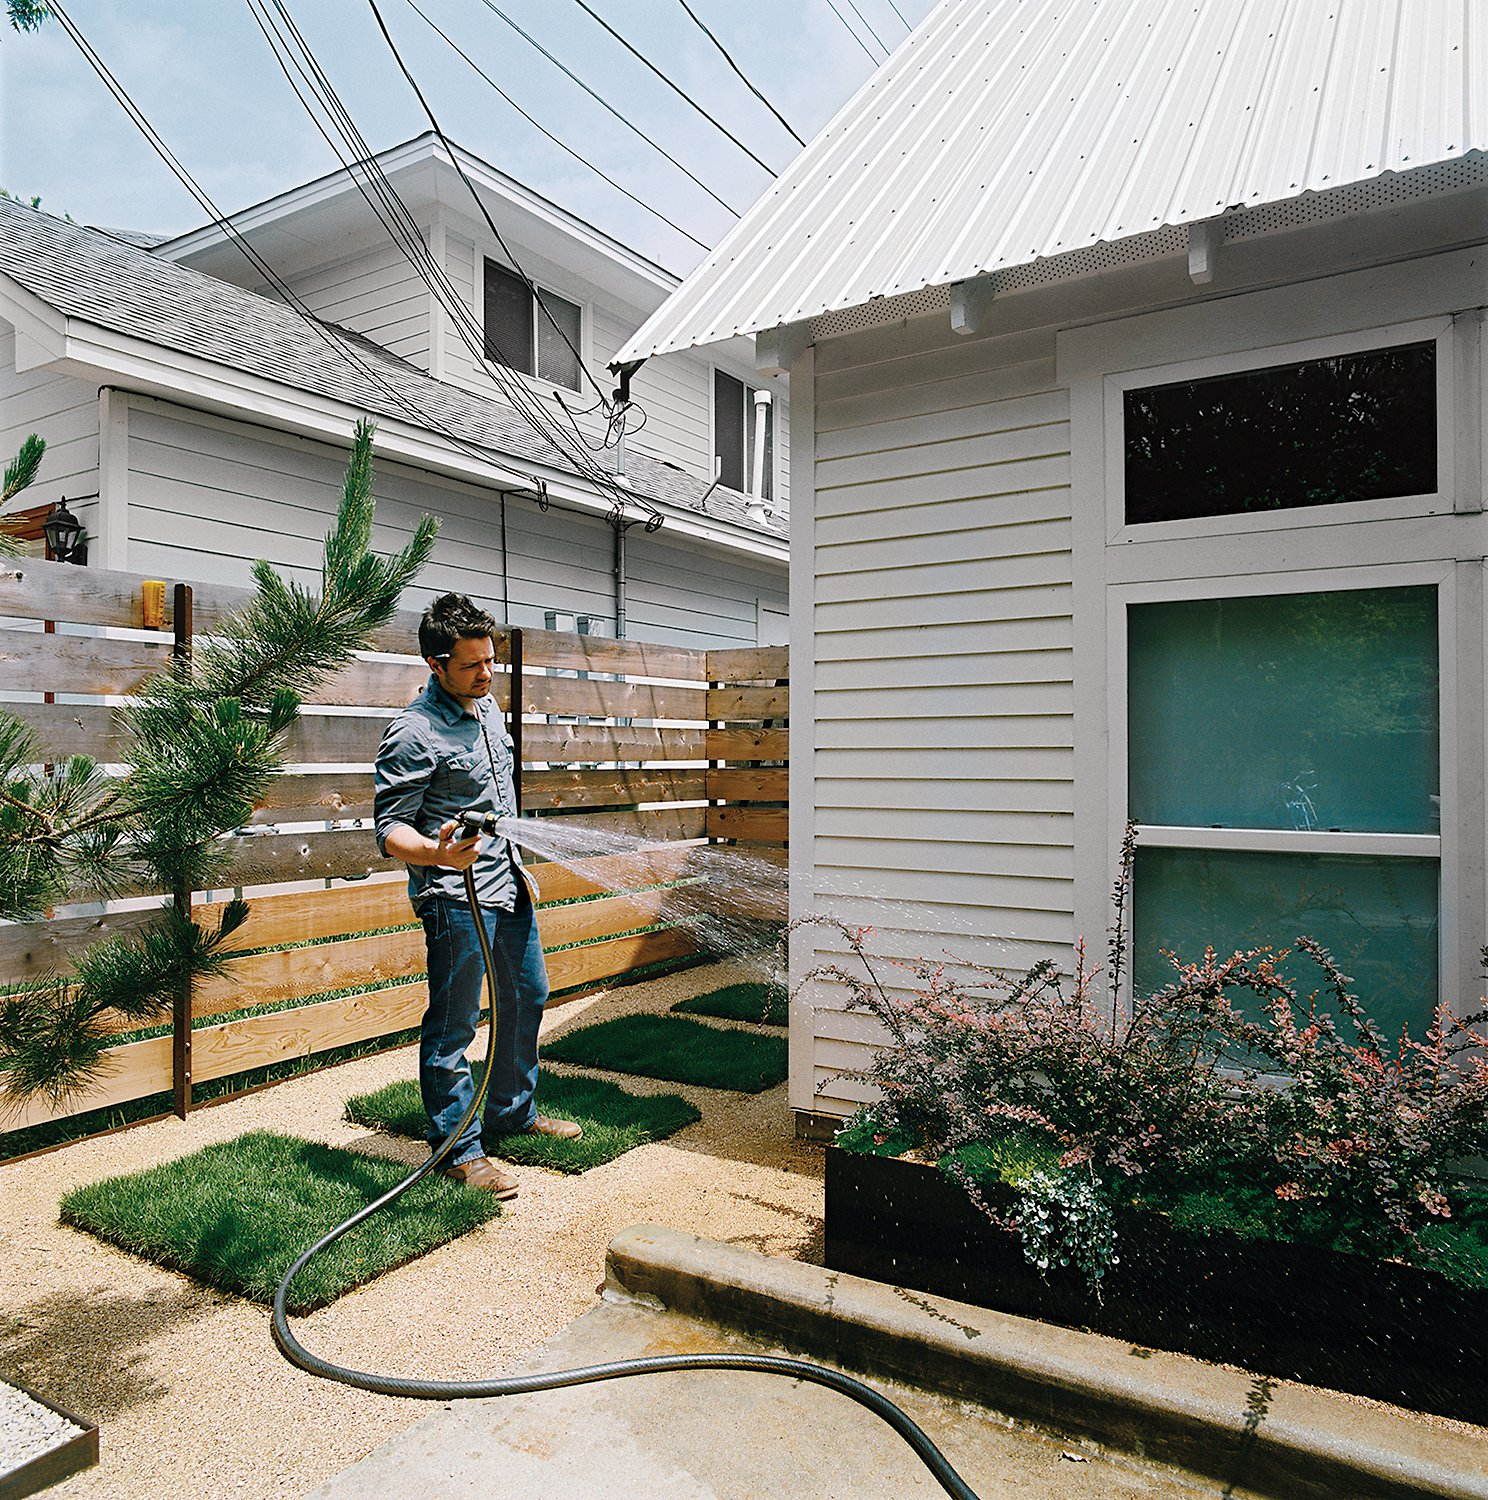 Outdoor and Gardens Dollahite tackled landscaping last, installing climate-sensitive plants in metal planters he designed himself.  Photo 8 of 10 in Salvage Love